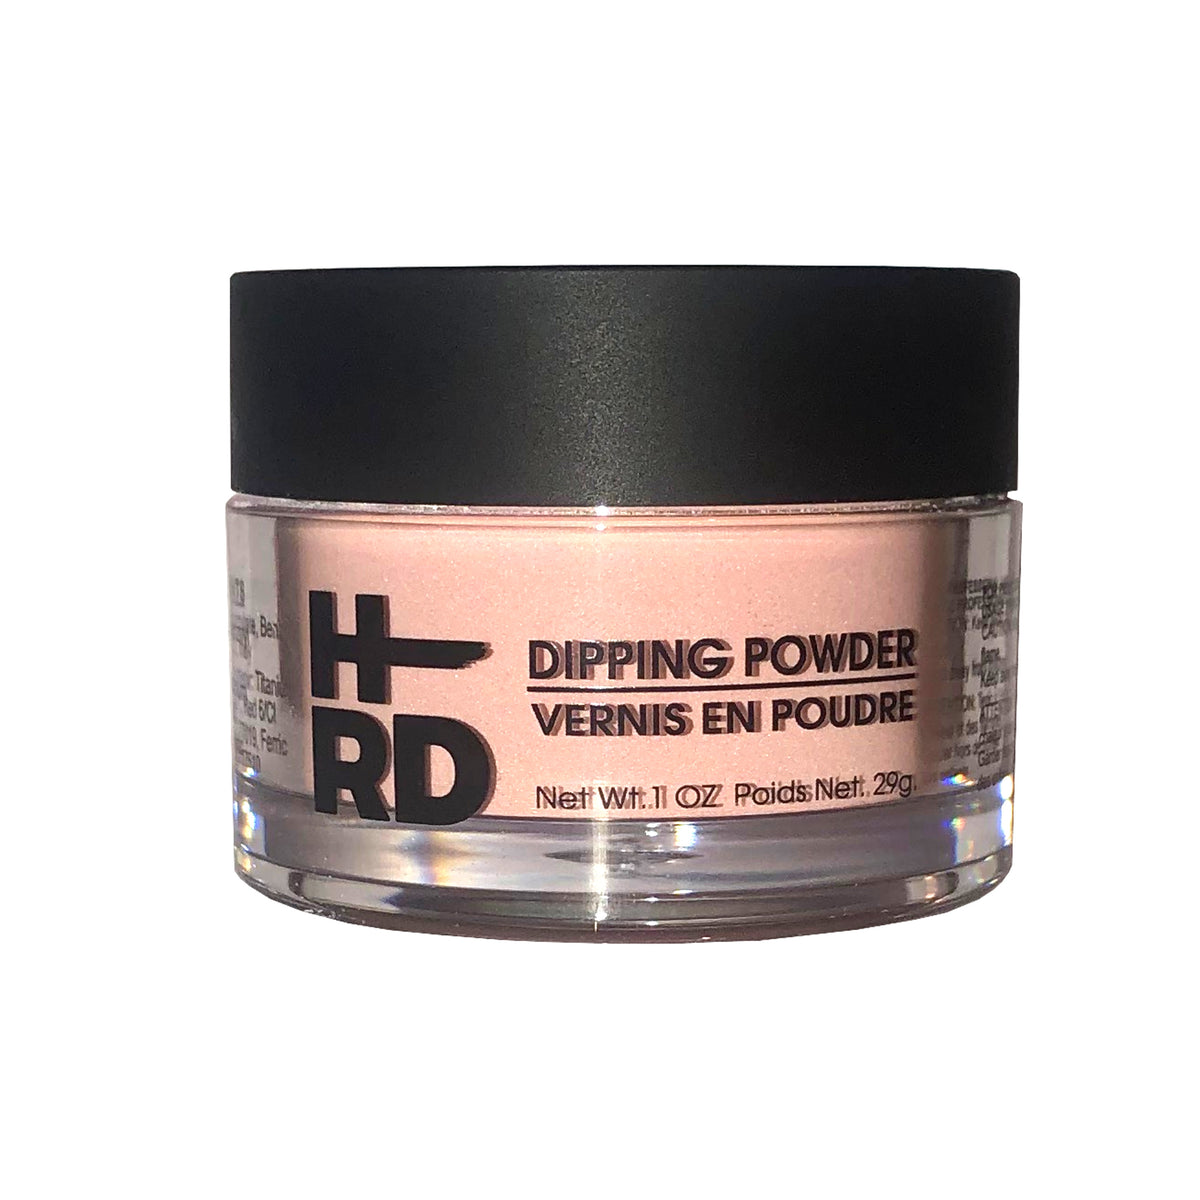 HRD-056 powder